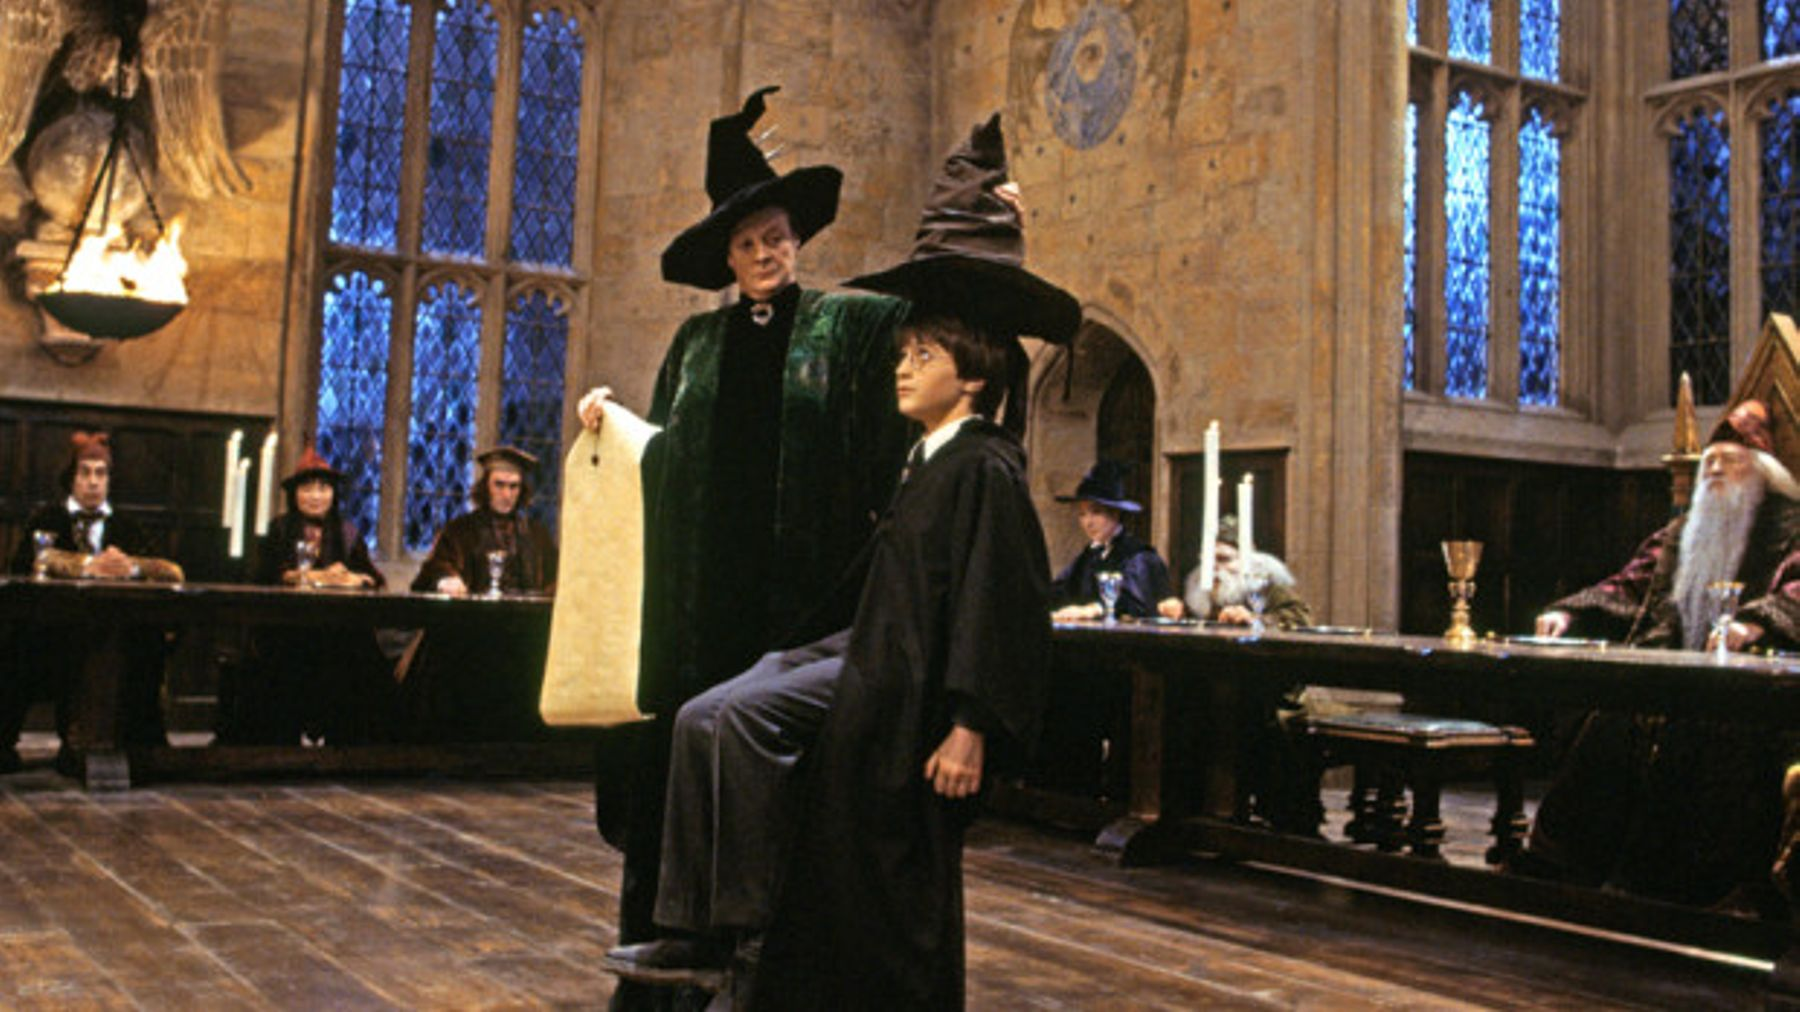 The Harry Potter Cast Took On The Sorting Hat And Shock